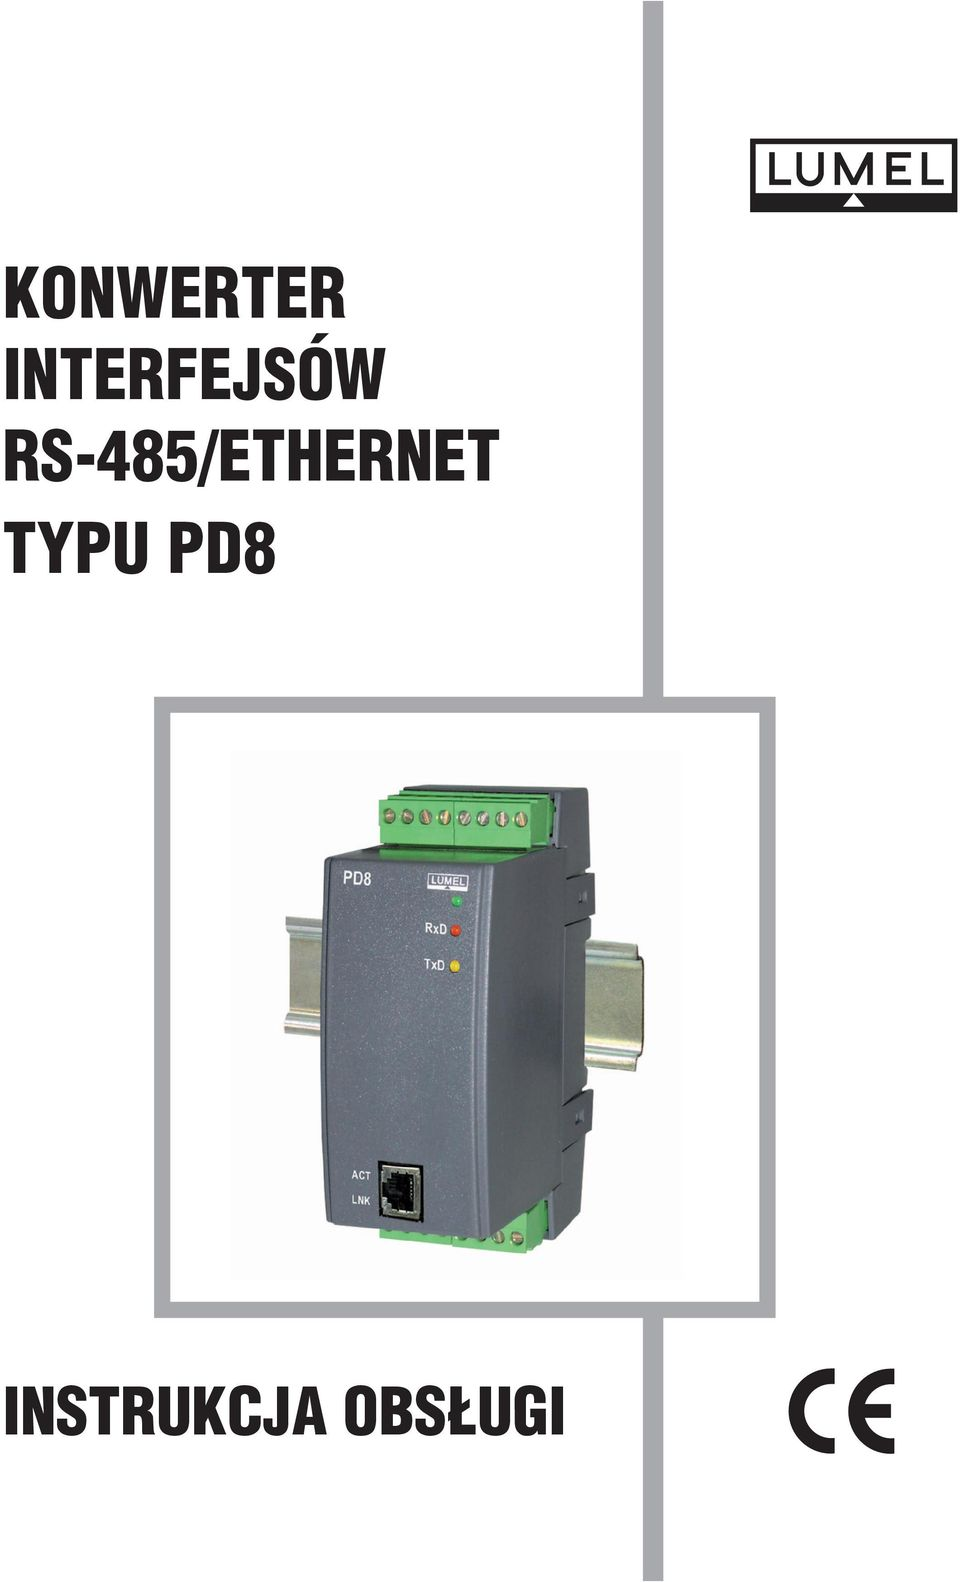 RS-485/ETHERNET